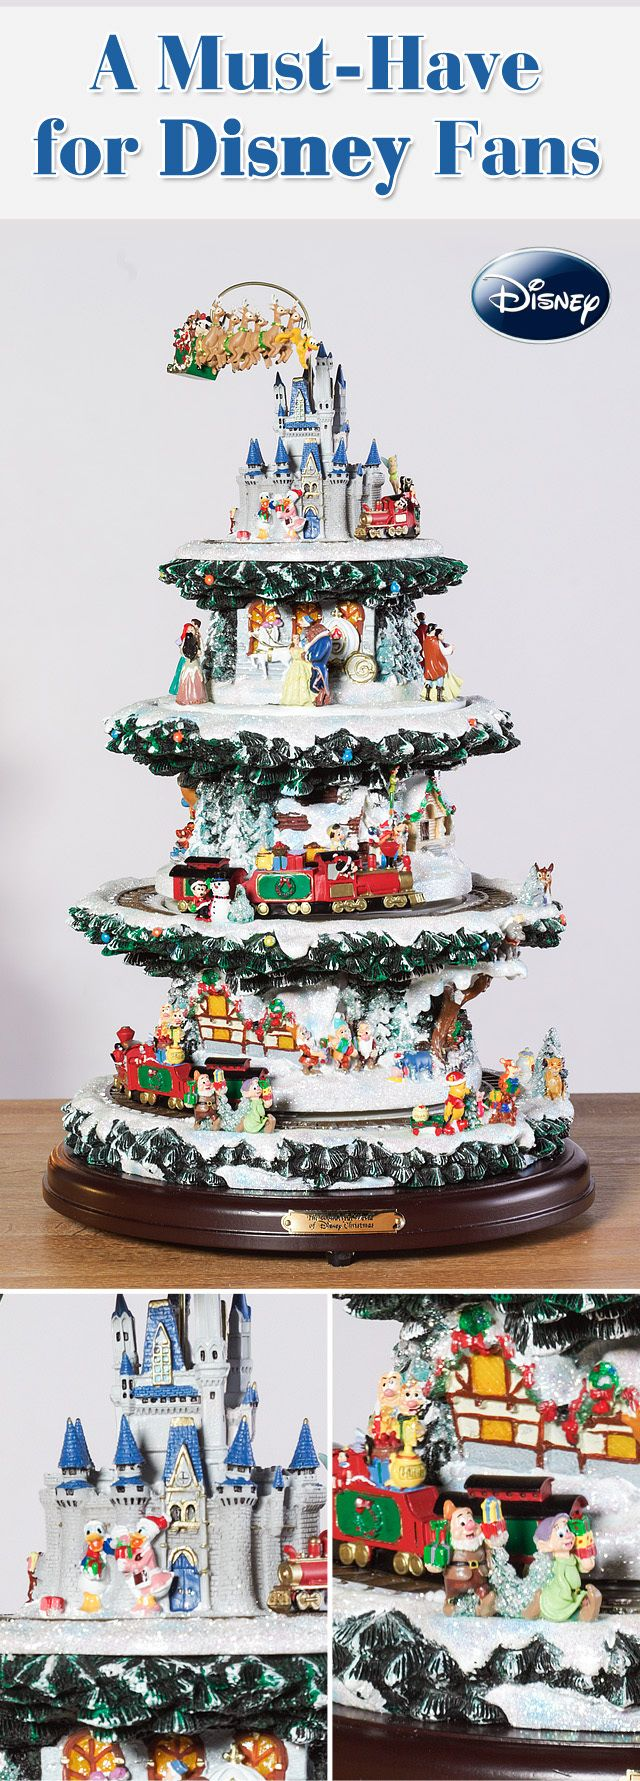 1000+ images about Holiday, Disney Style on Pinterest   Disney, Fab five and Merry christmas